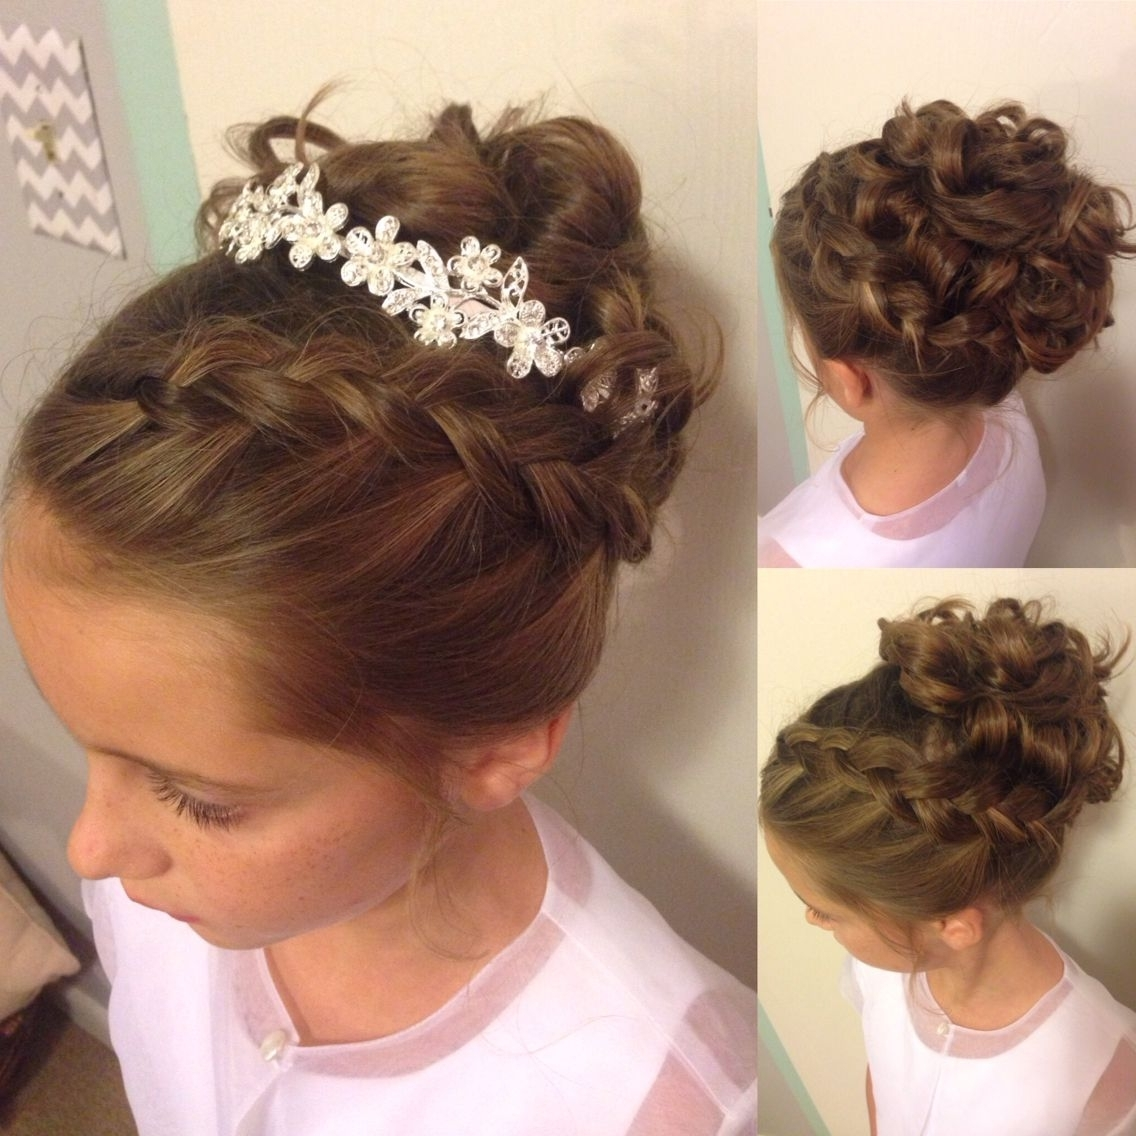 Pinmary Rose On My Work | Pinterest | Updo, Weddings And Girls With Easy Updo Hairstyles For Kids (View 5 of 15)